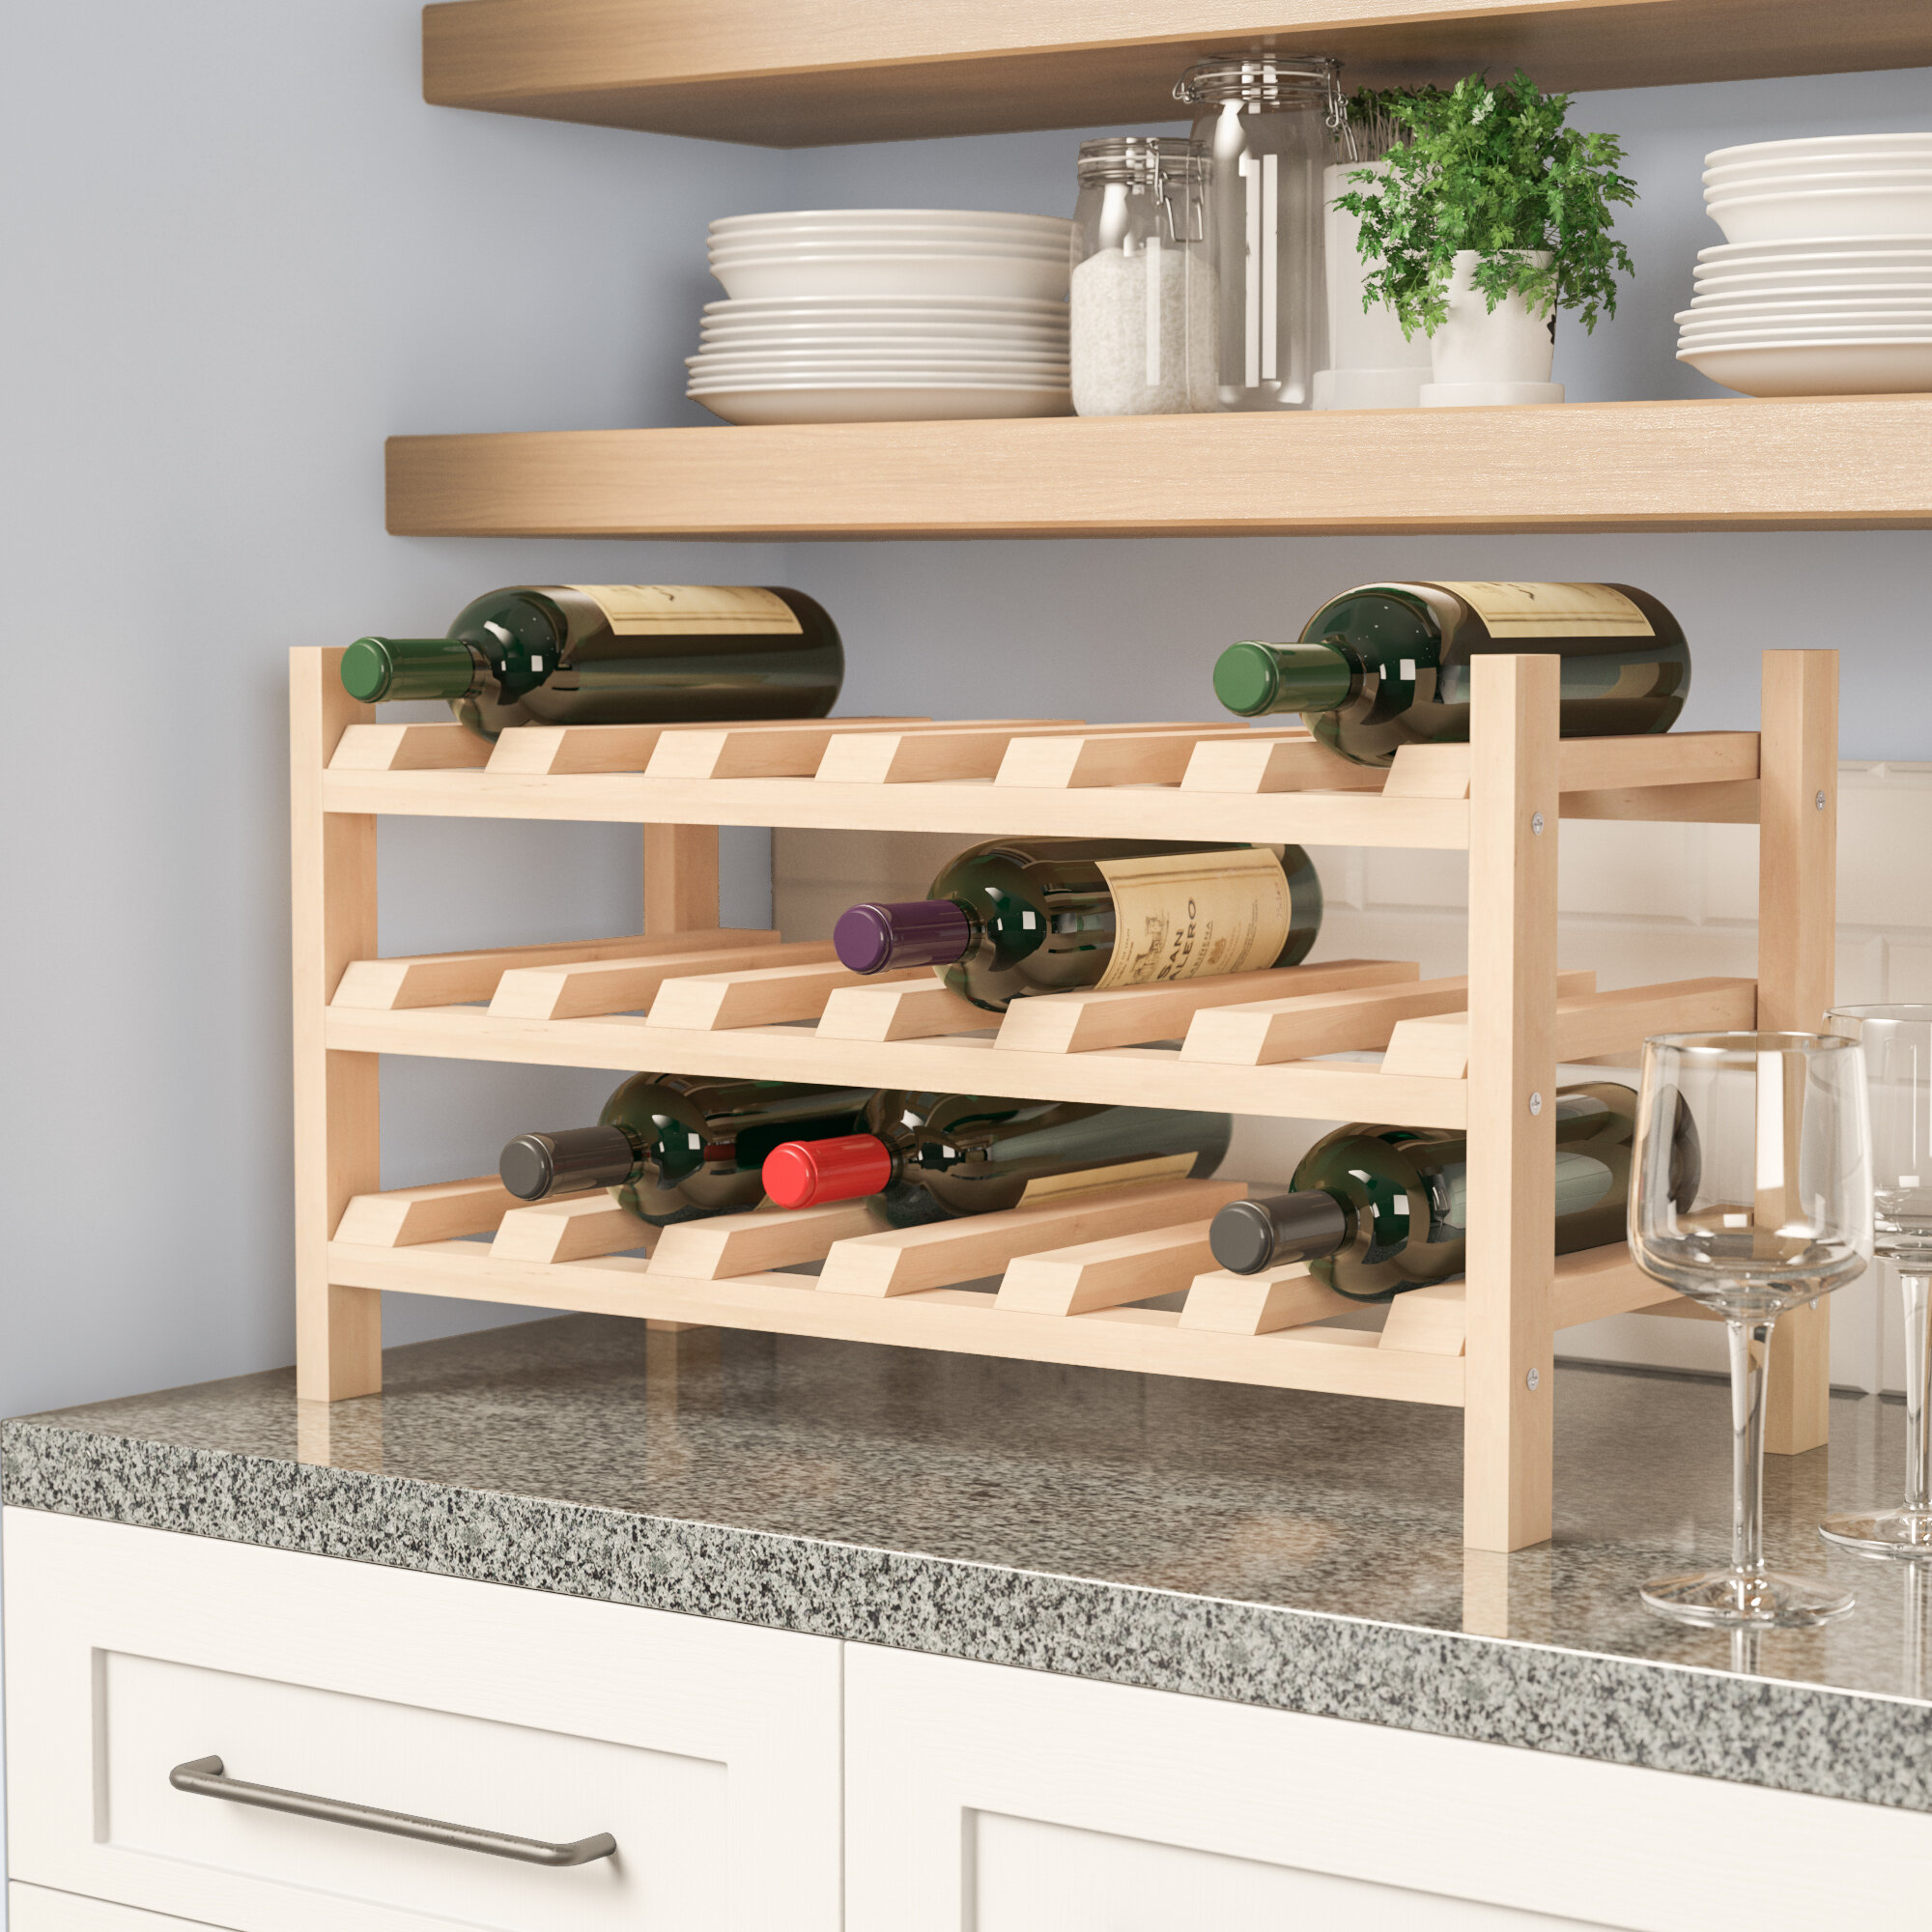 awesome kitchen stand floating of rustic bakers wood rack wine corner